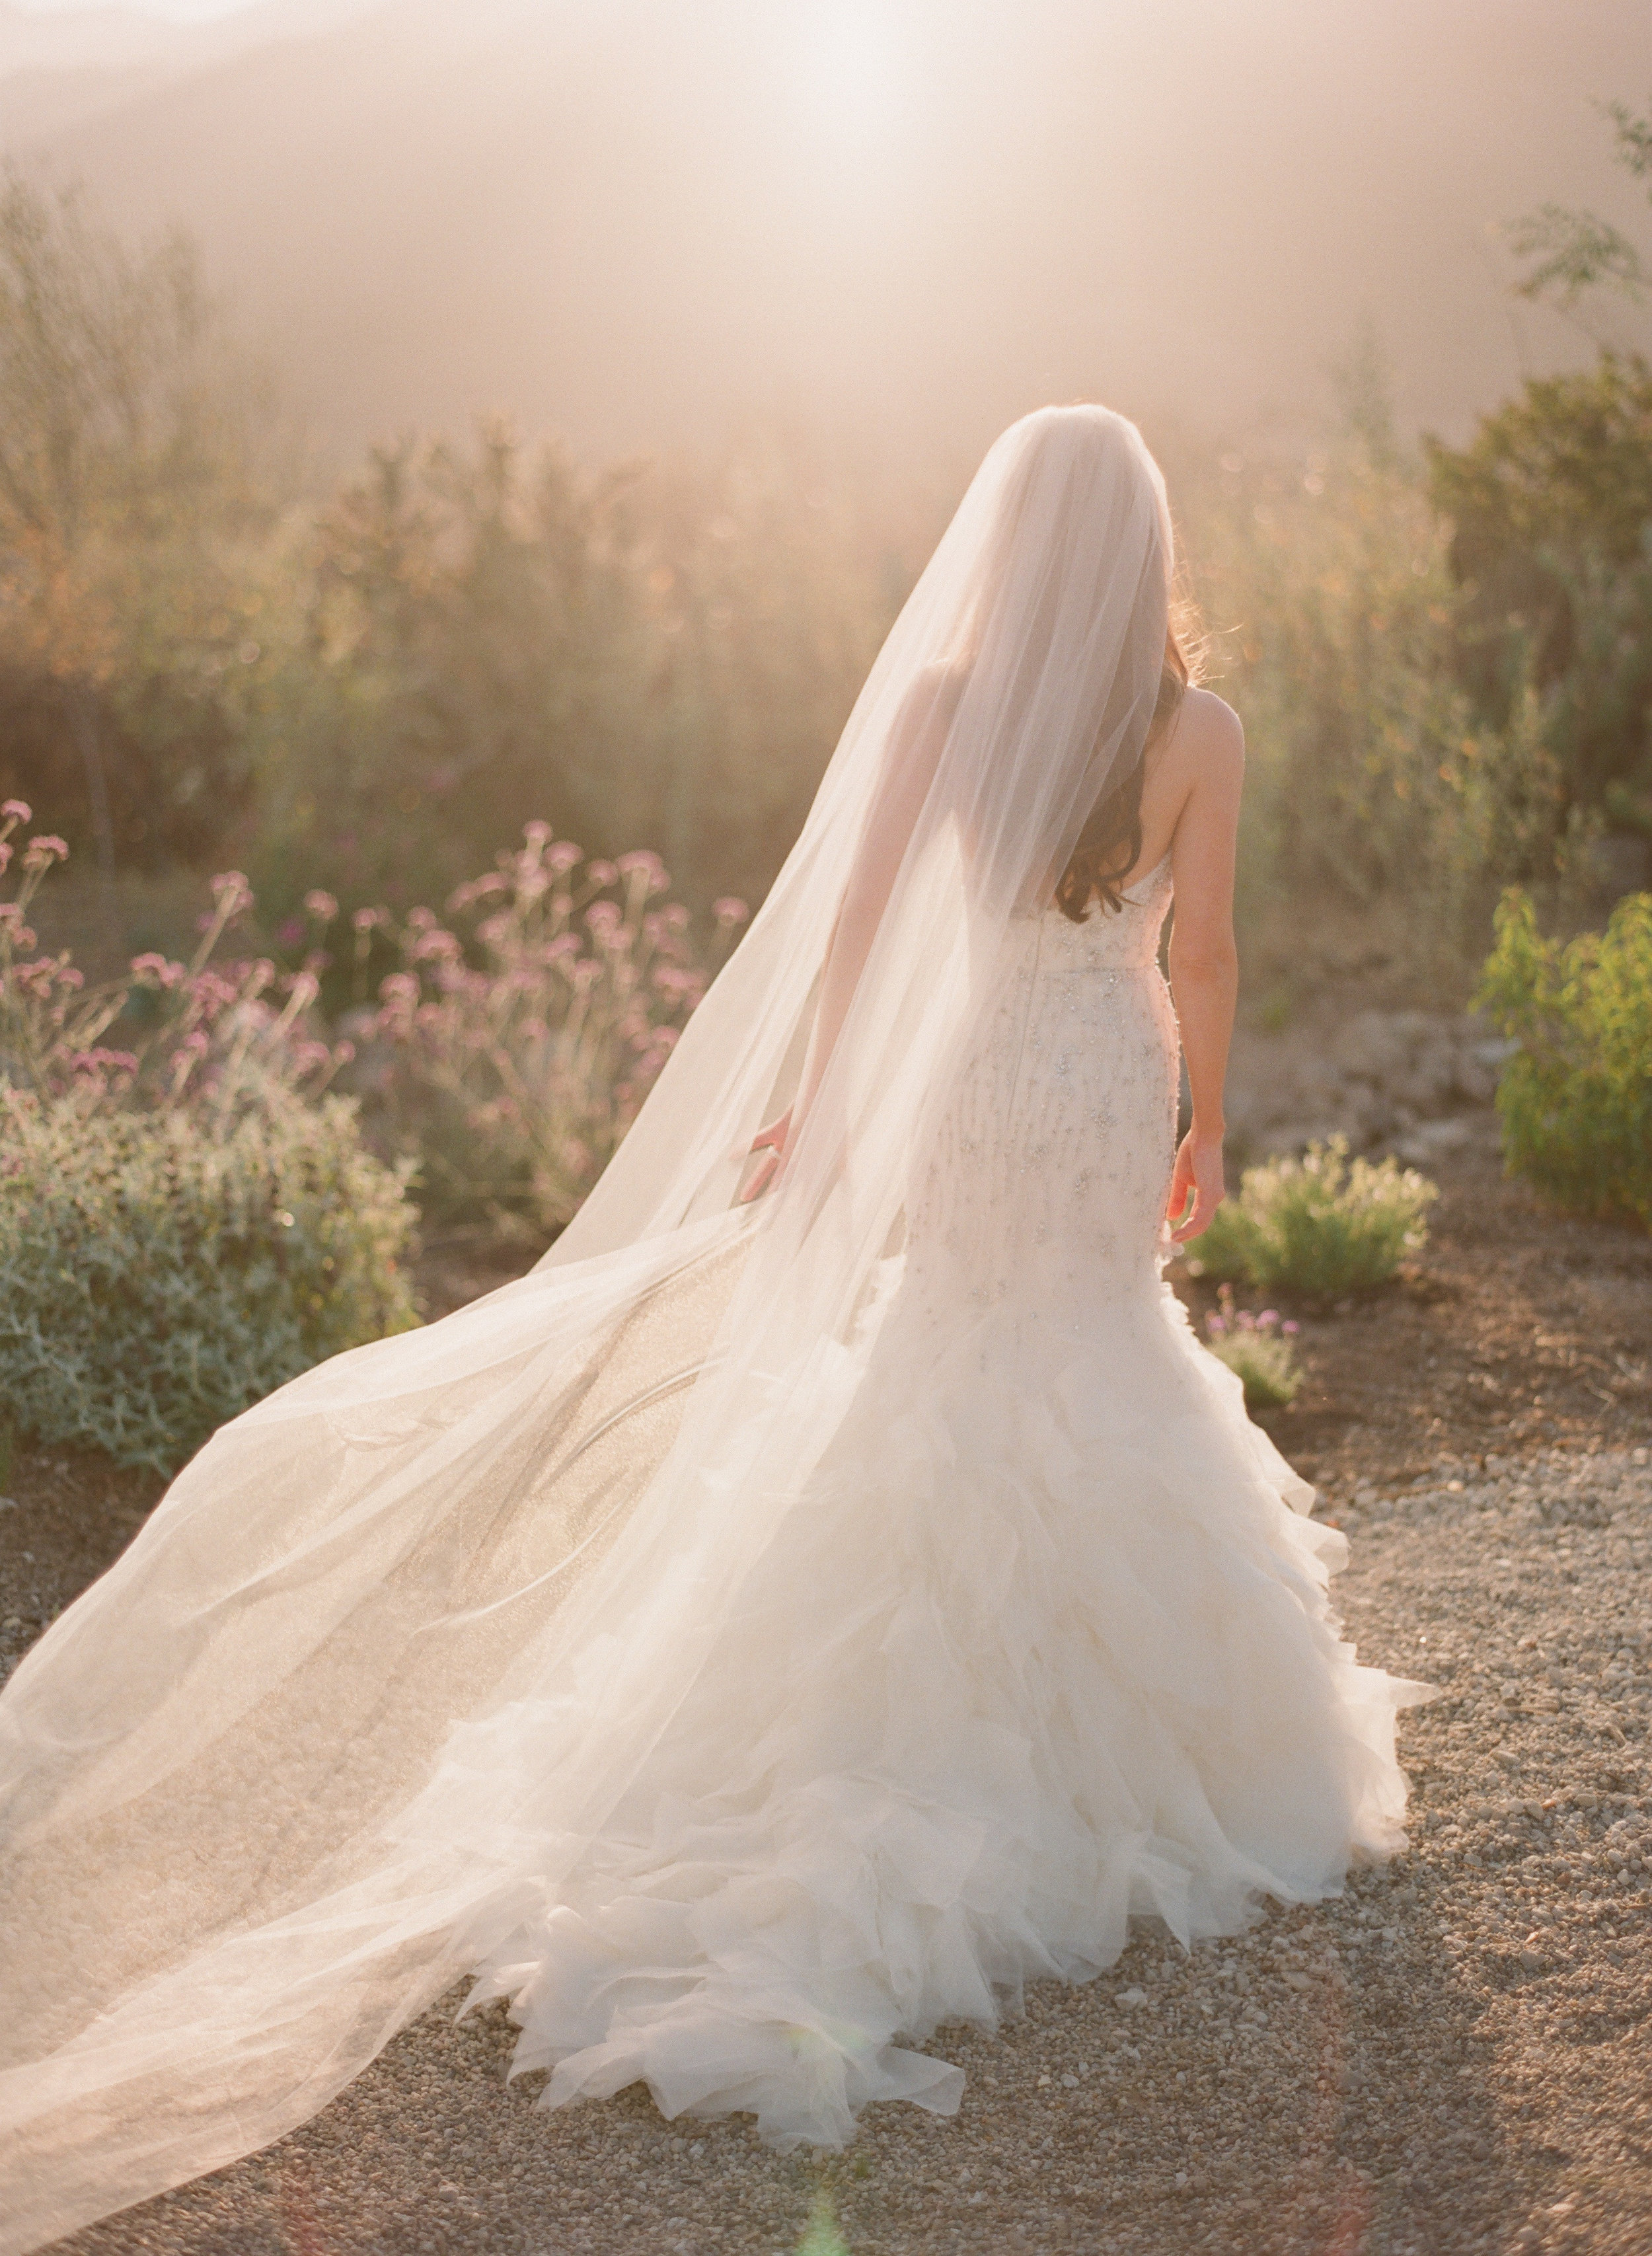 weddings - ~ Select Which Wedding Gallery You'd Like to See ~